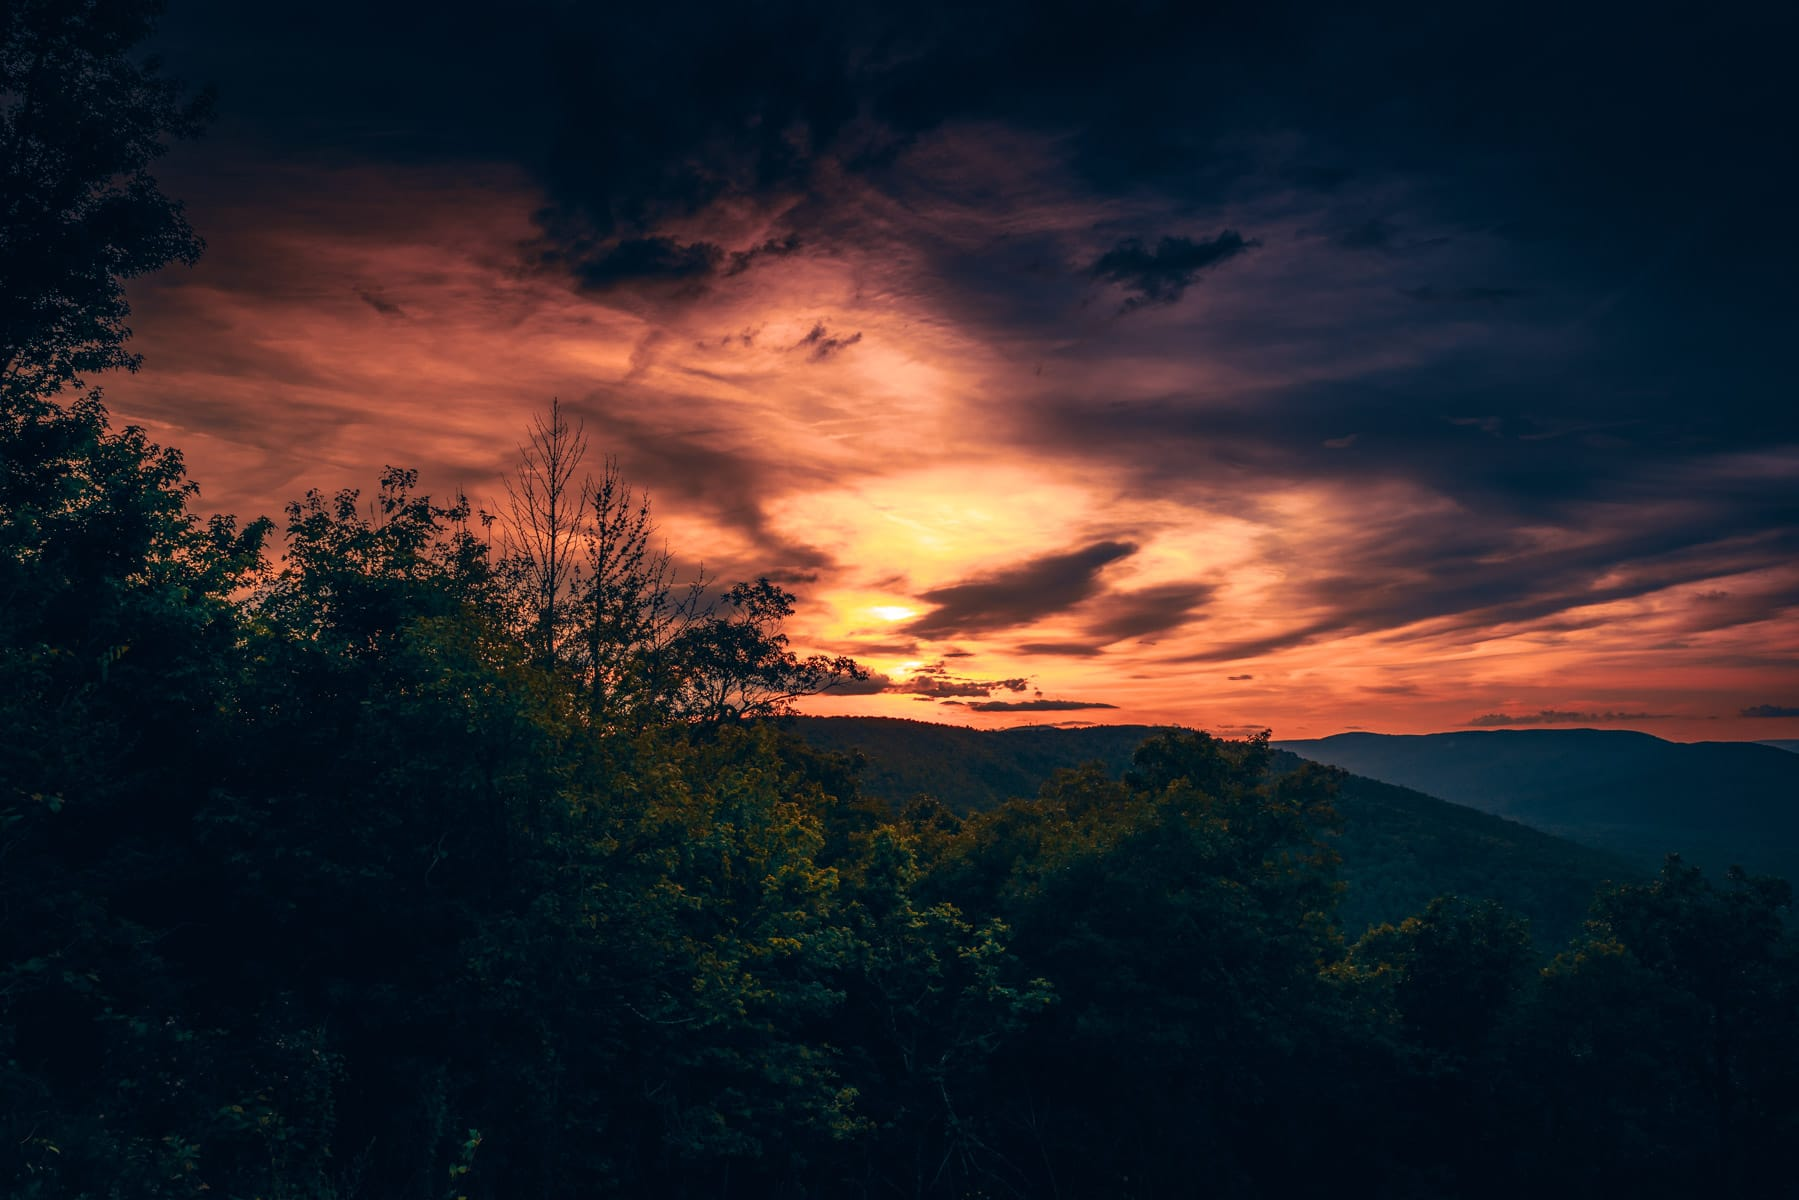 The last light of day sets the sky afire in the Ouachita Mountains near Mena, Arkansas.